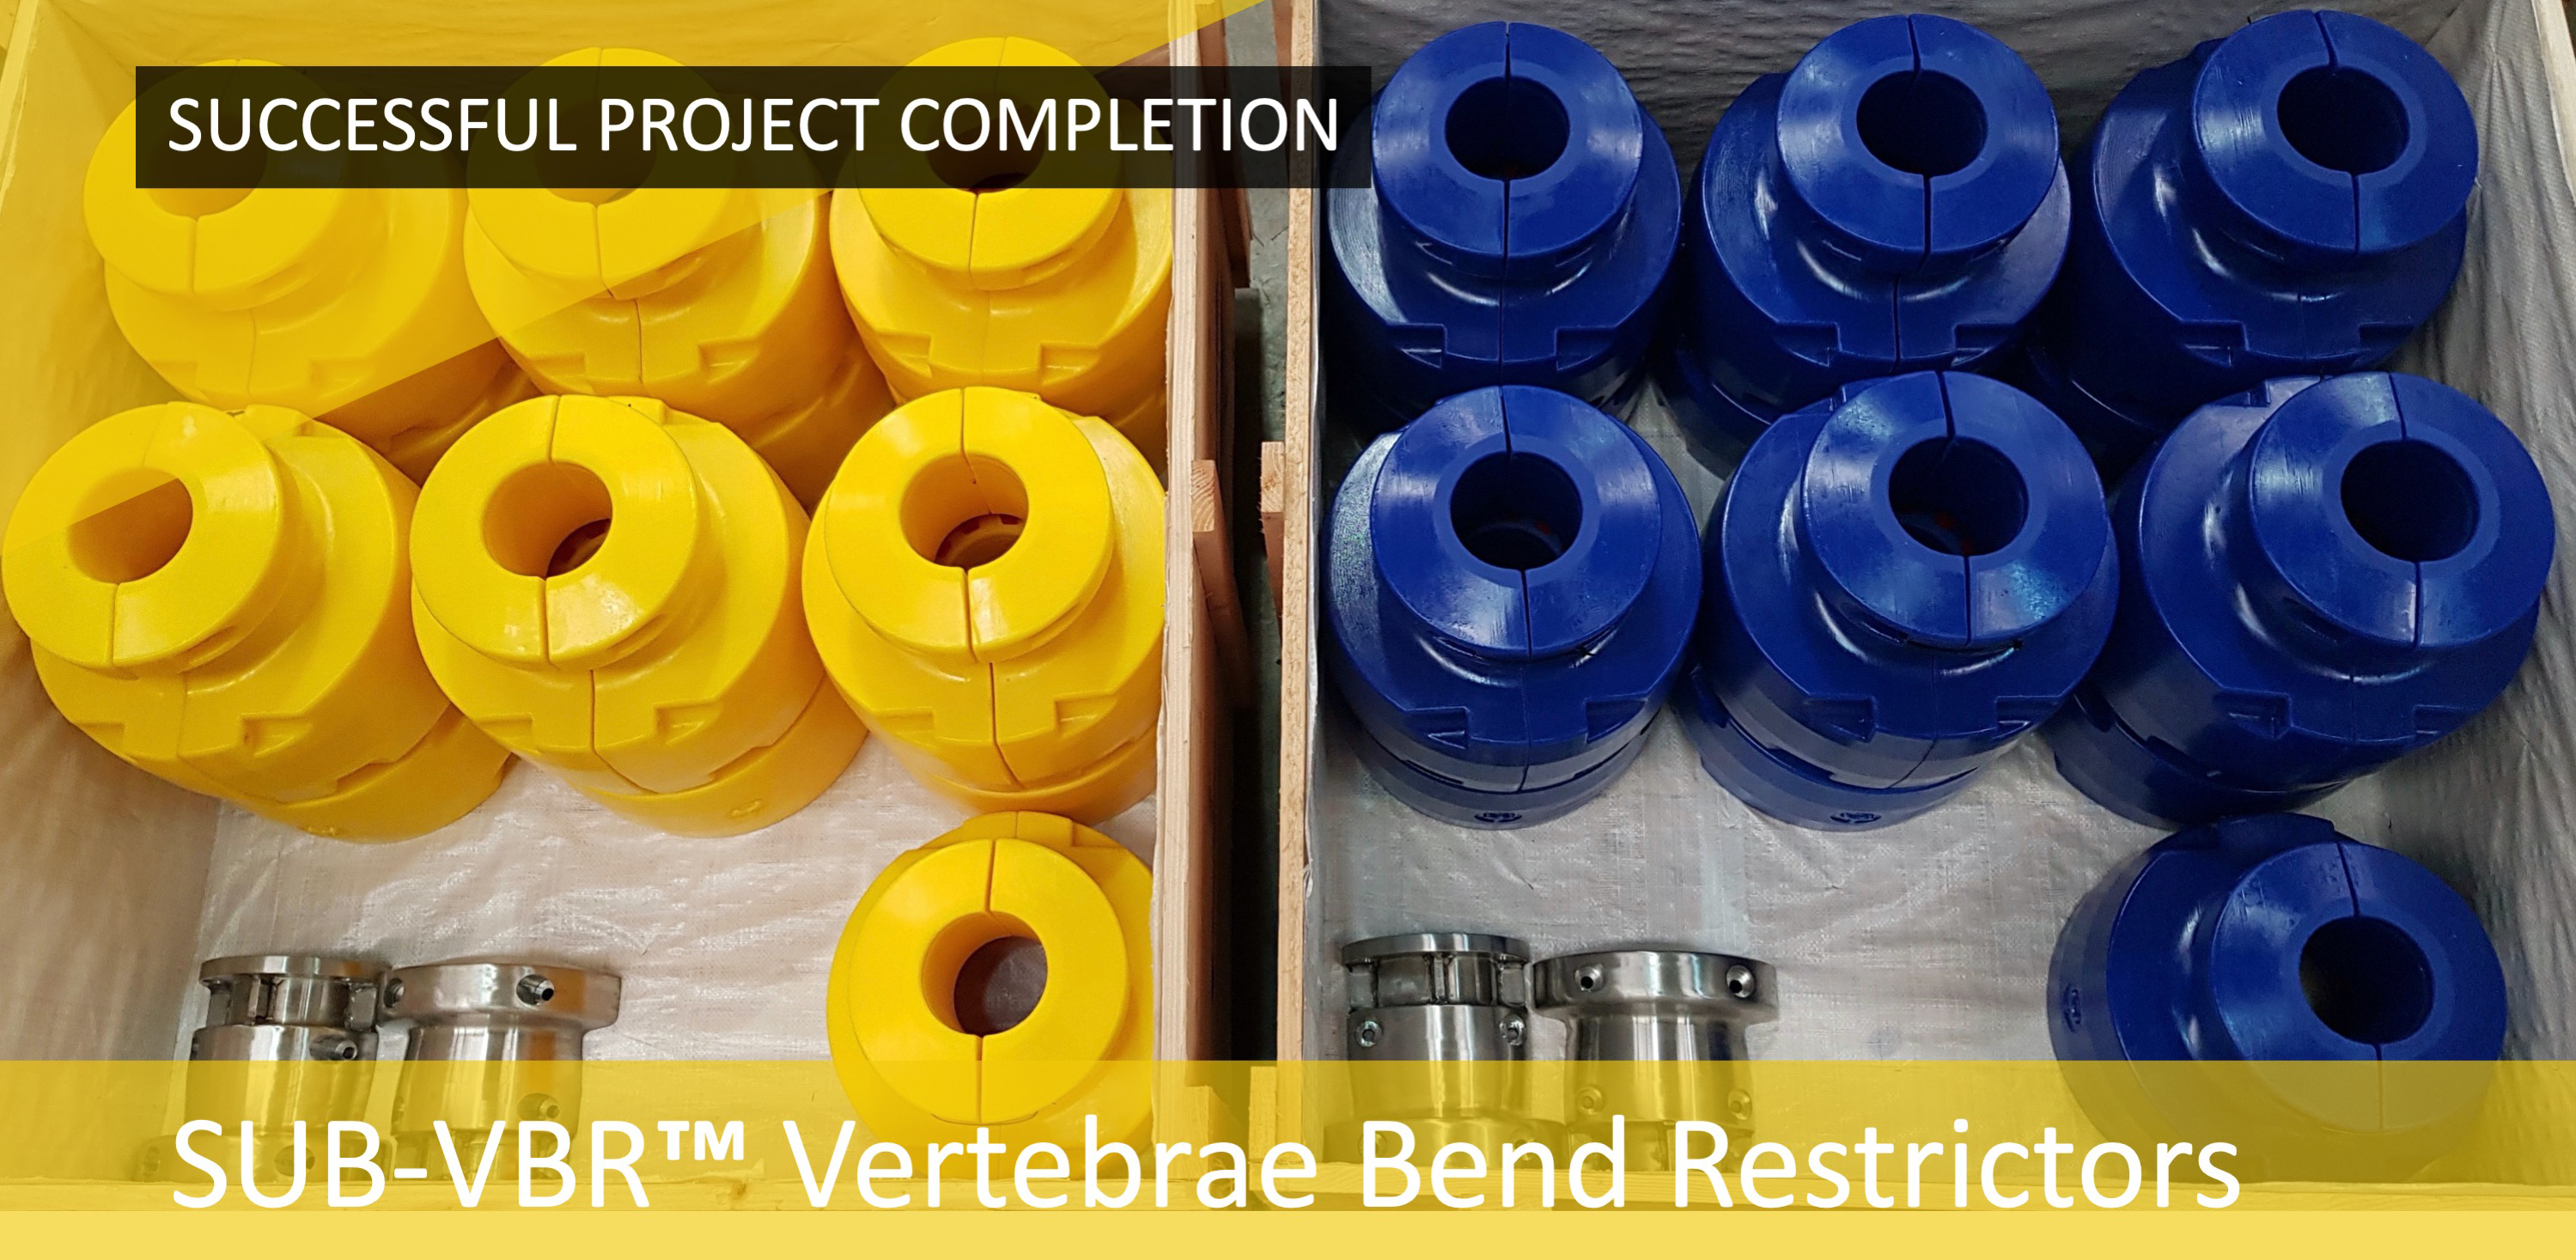 Equipment - SUB-VBR™ Vertebrae Bend Restrictors